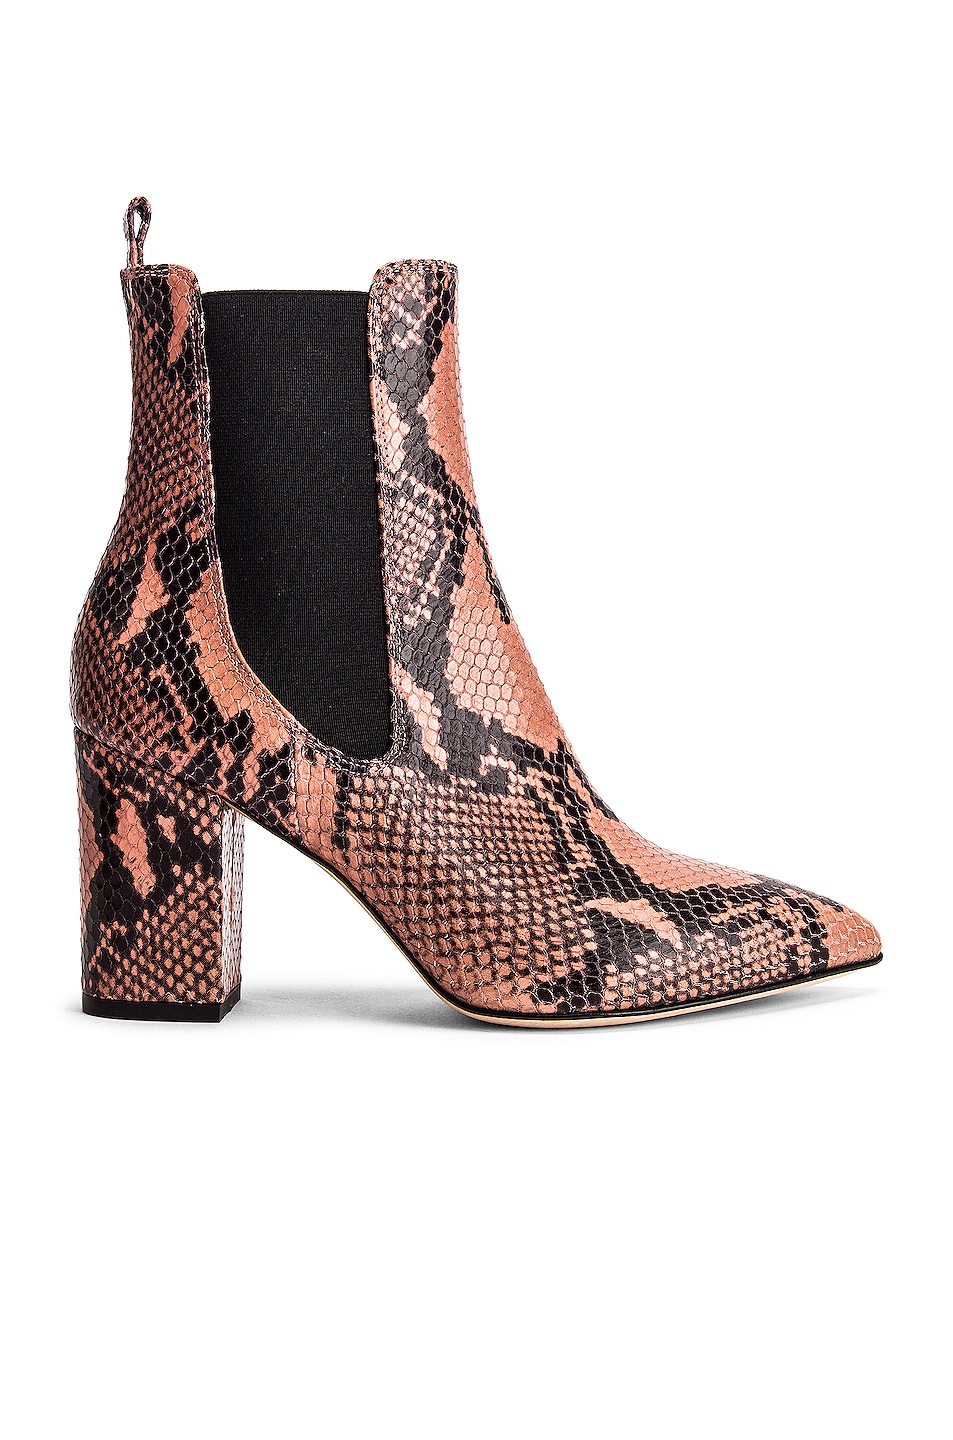 Image 1 of Paris Texas Python Print Ankle Boot in Blush